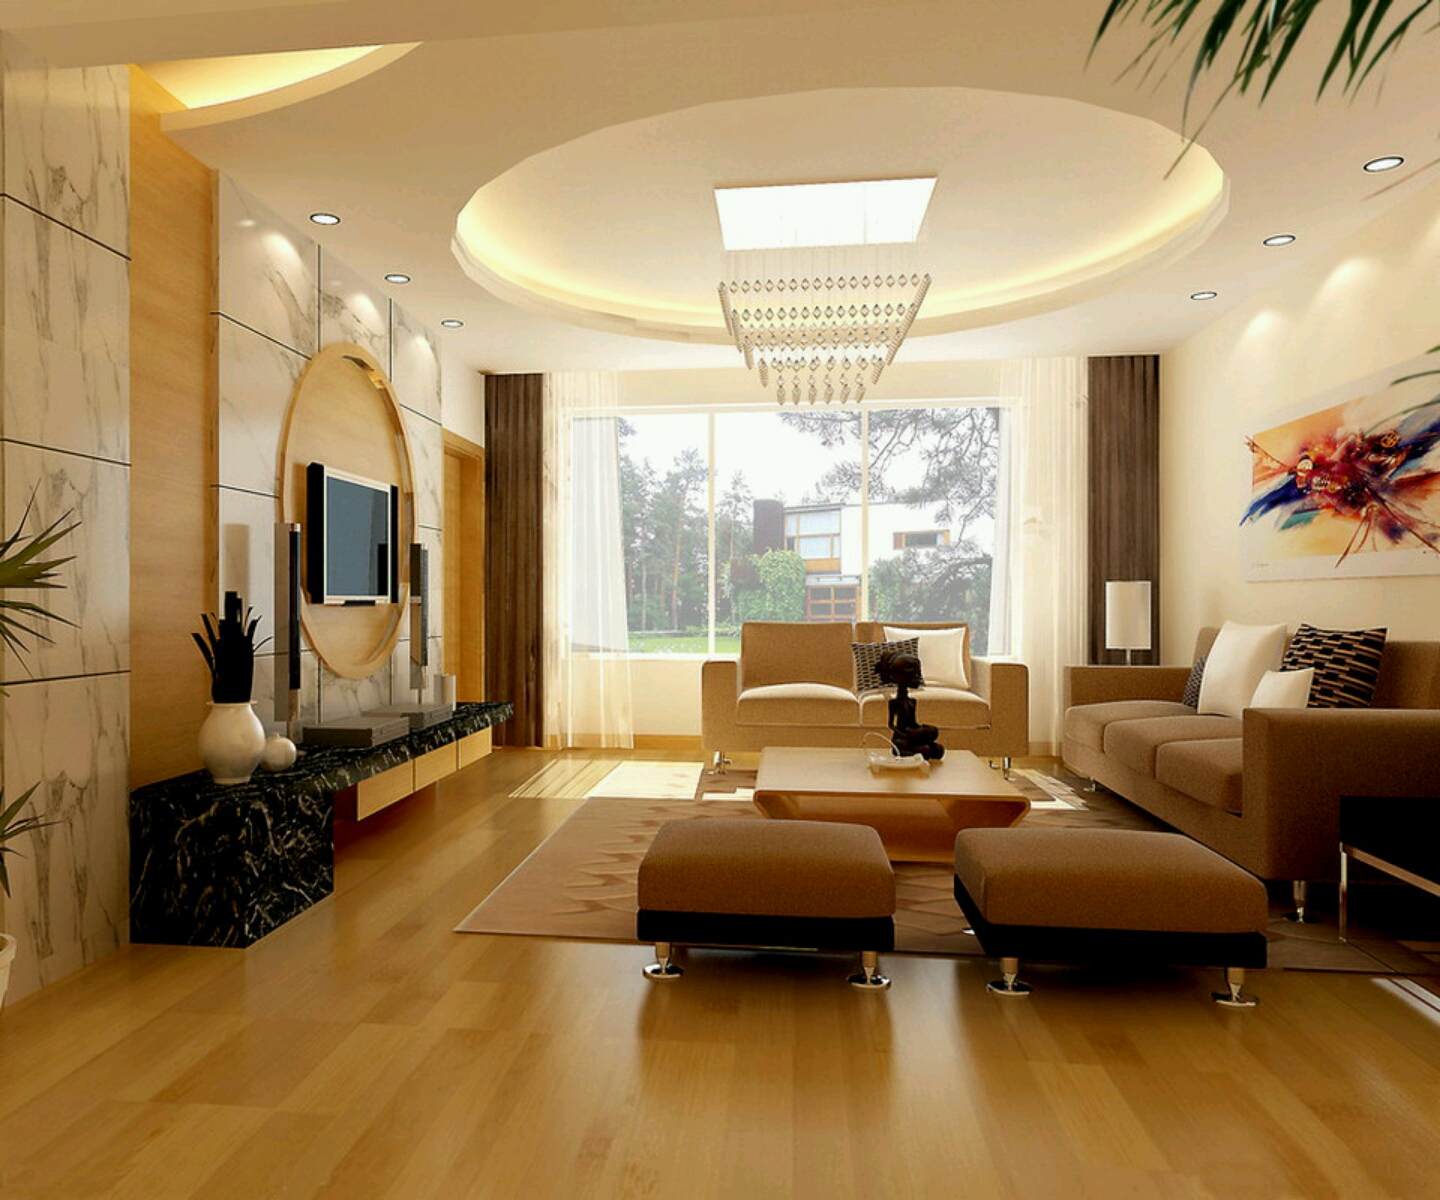 Modern interior decoration living rooms ceiling designs for New home decoration